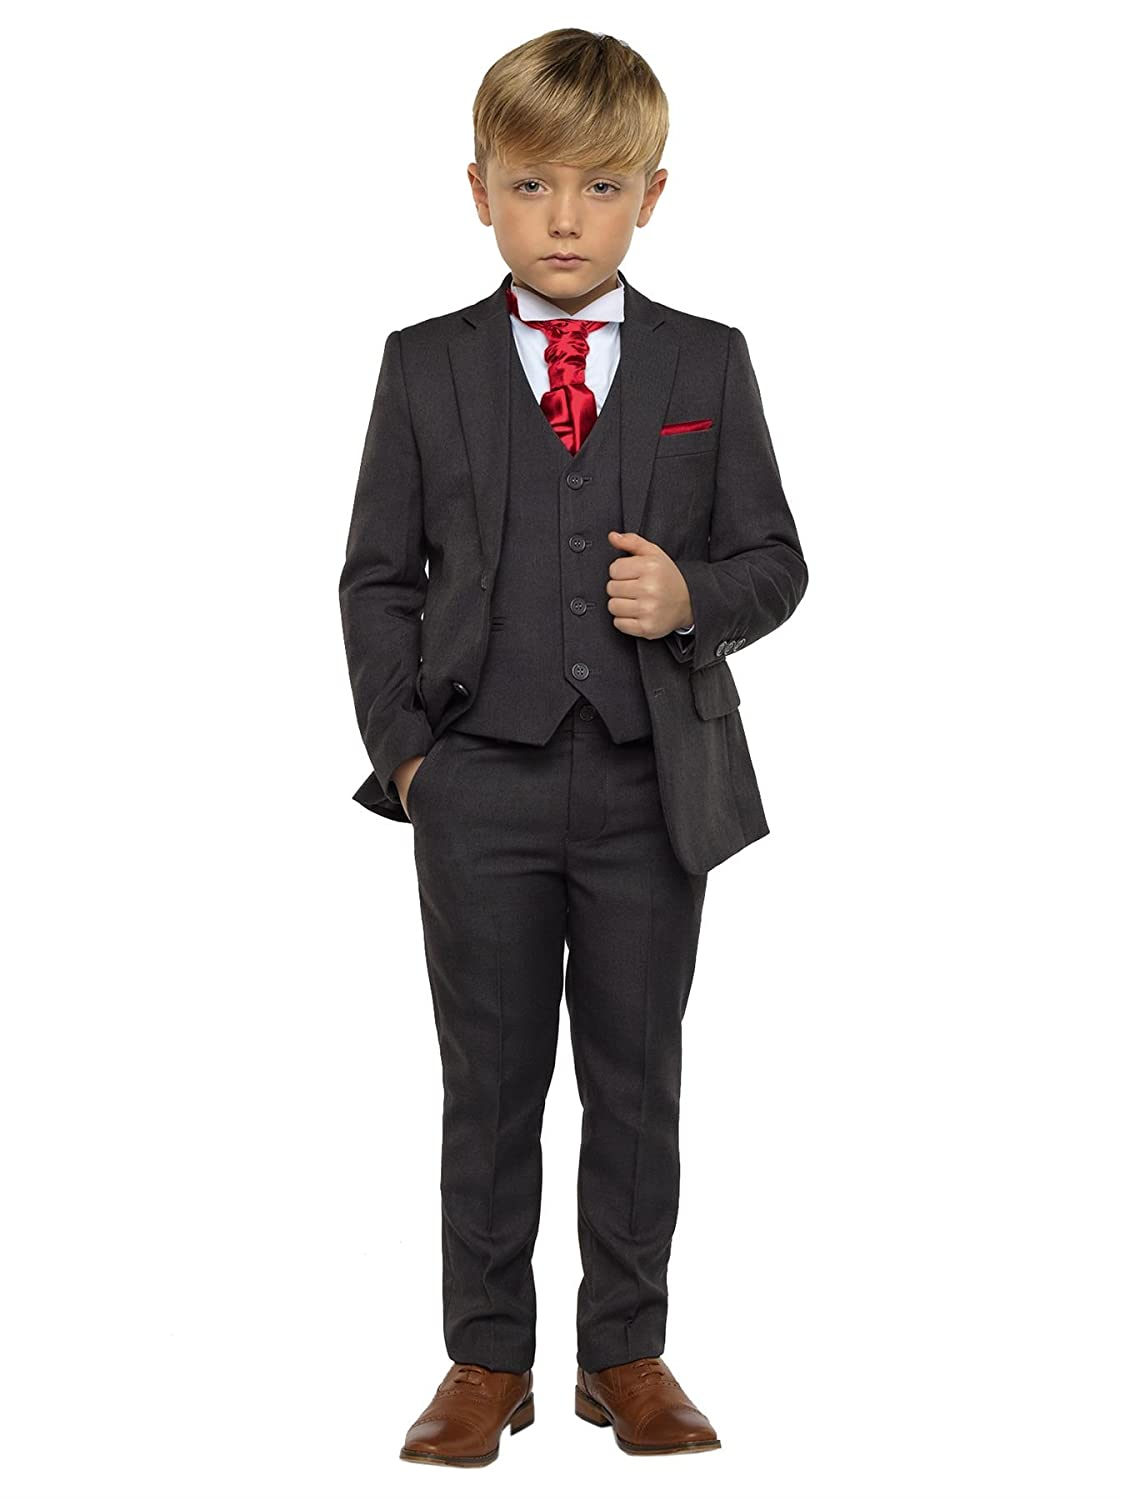 Paisley of London Boys Dark Grey Suit, Page boy Suits, Boys Wedding Suits, 12-18 Months - 13 Years